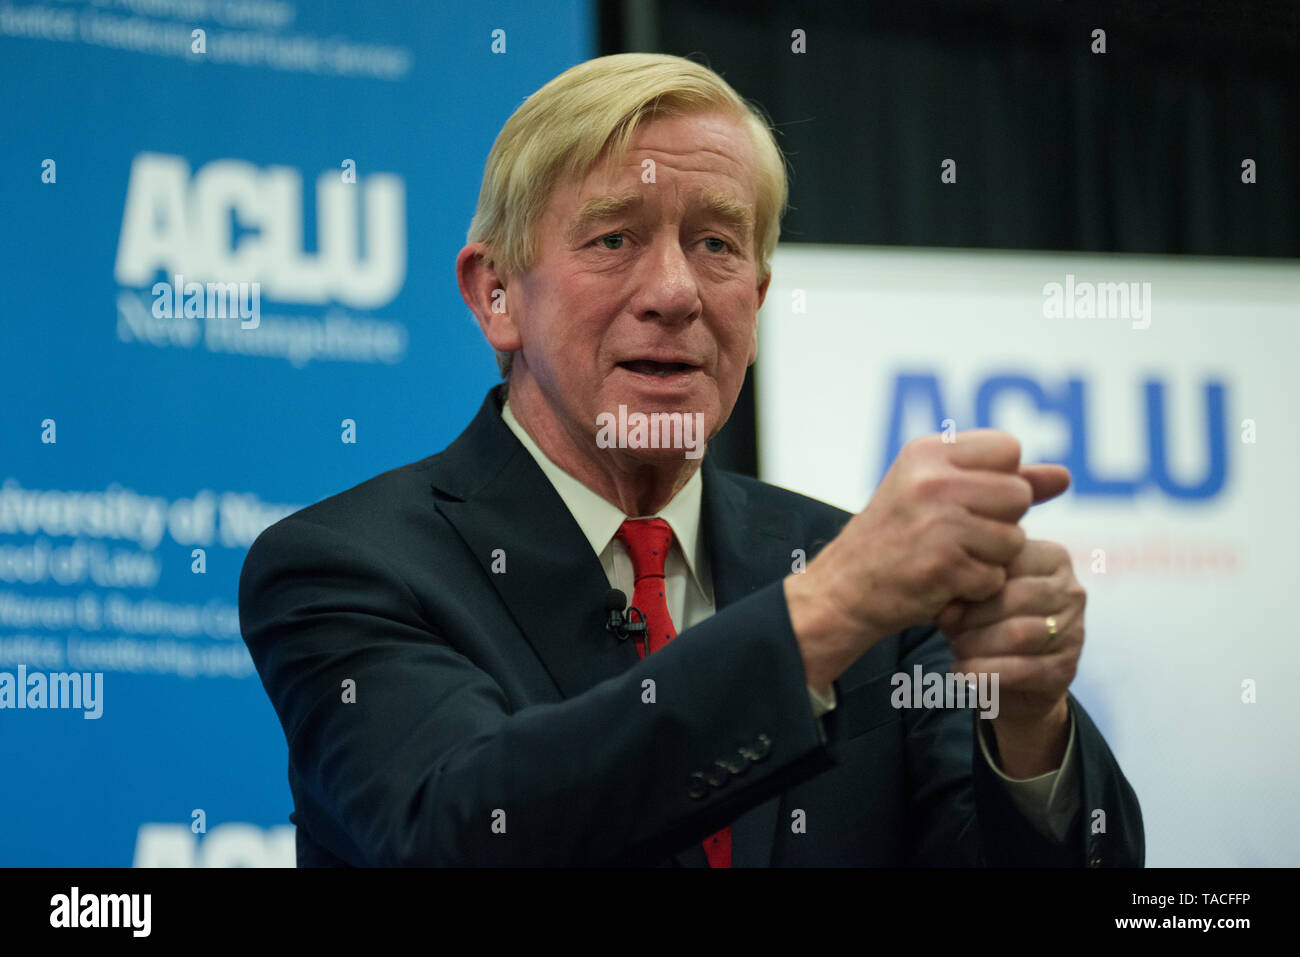 Concord, NH, USA May 23 2019.  Republican Presidential candidate and former Massachusetts Governor Bill Weld spoke to less than 100 people at the University of New Hampshire School of Law in Concord, NH.  The event, Civil Liberties & The Presidency, was organized by the New Hampshire American Civil Liberties Union (ACLU). Credit: Chuck Nacke/Alamy Live News - Stock Image